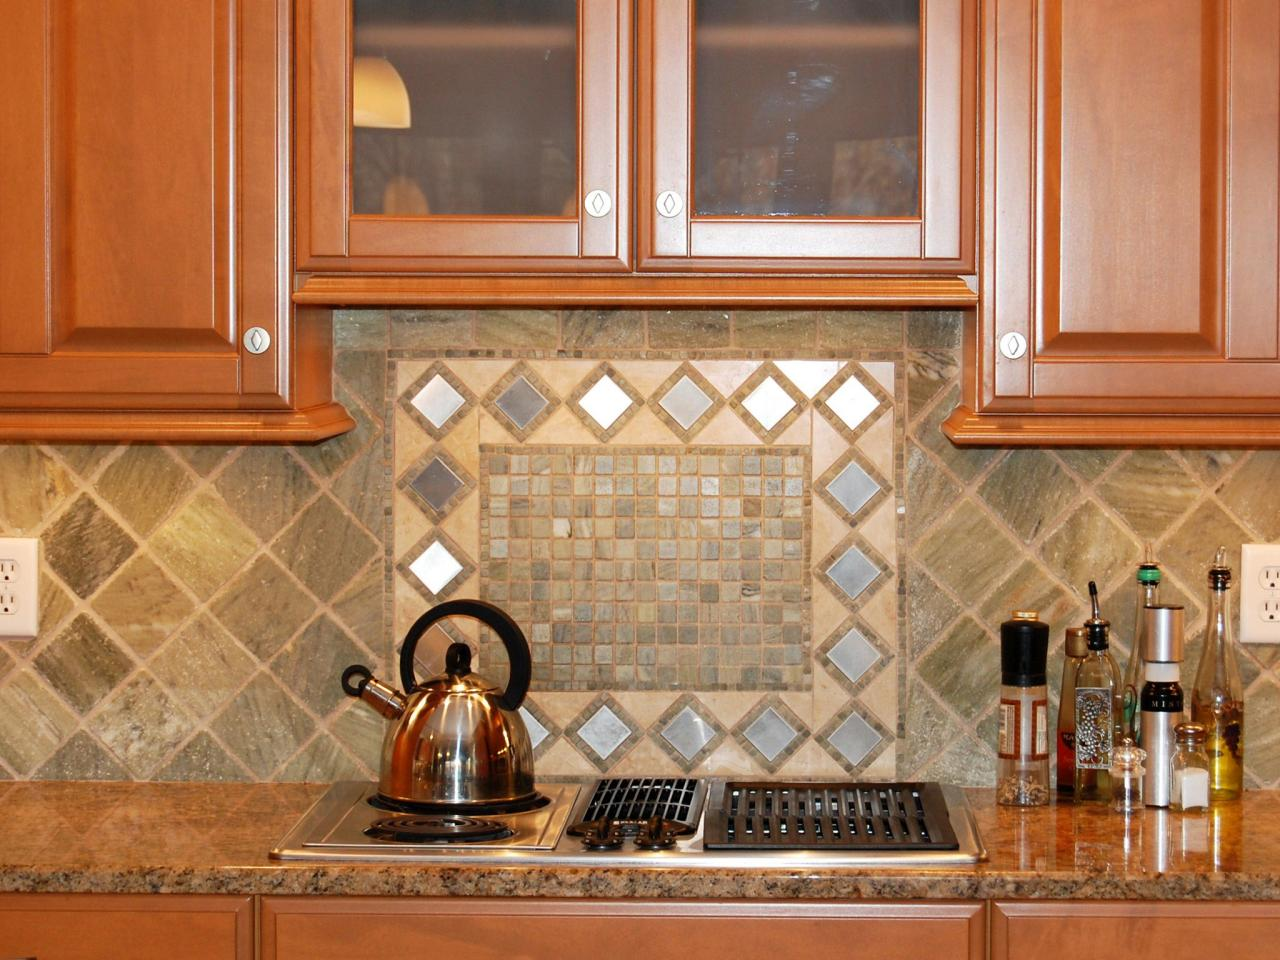 Kitchen backsplash tile ideas hgtv Bathroom designs with tile backsplashes